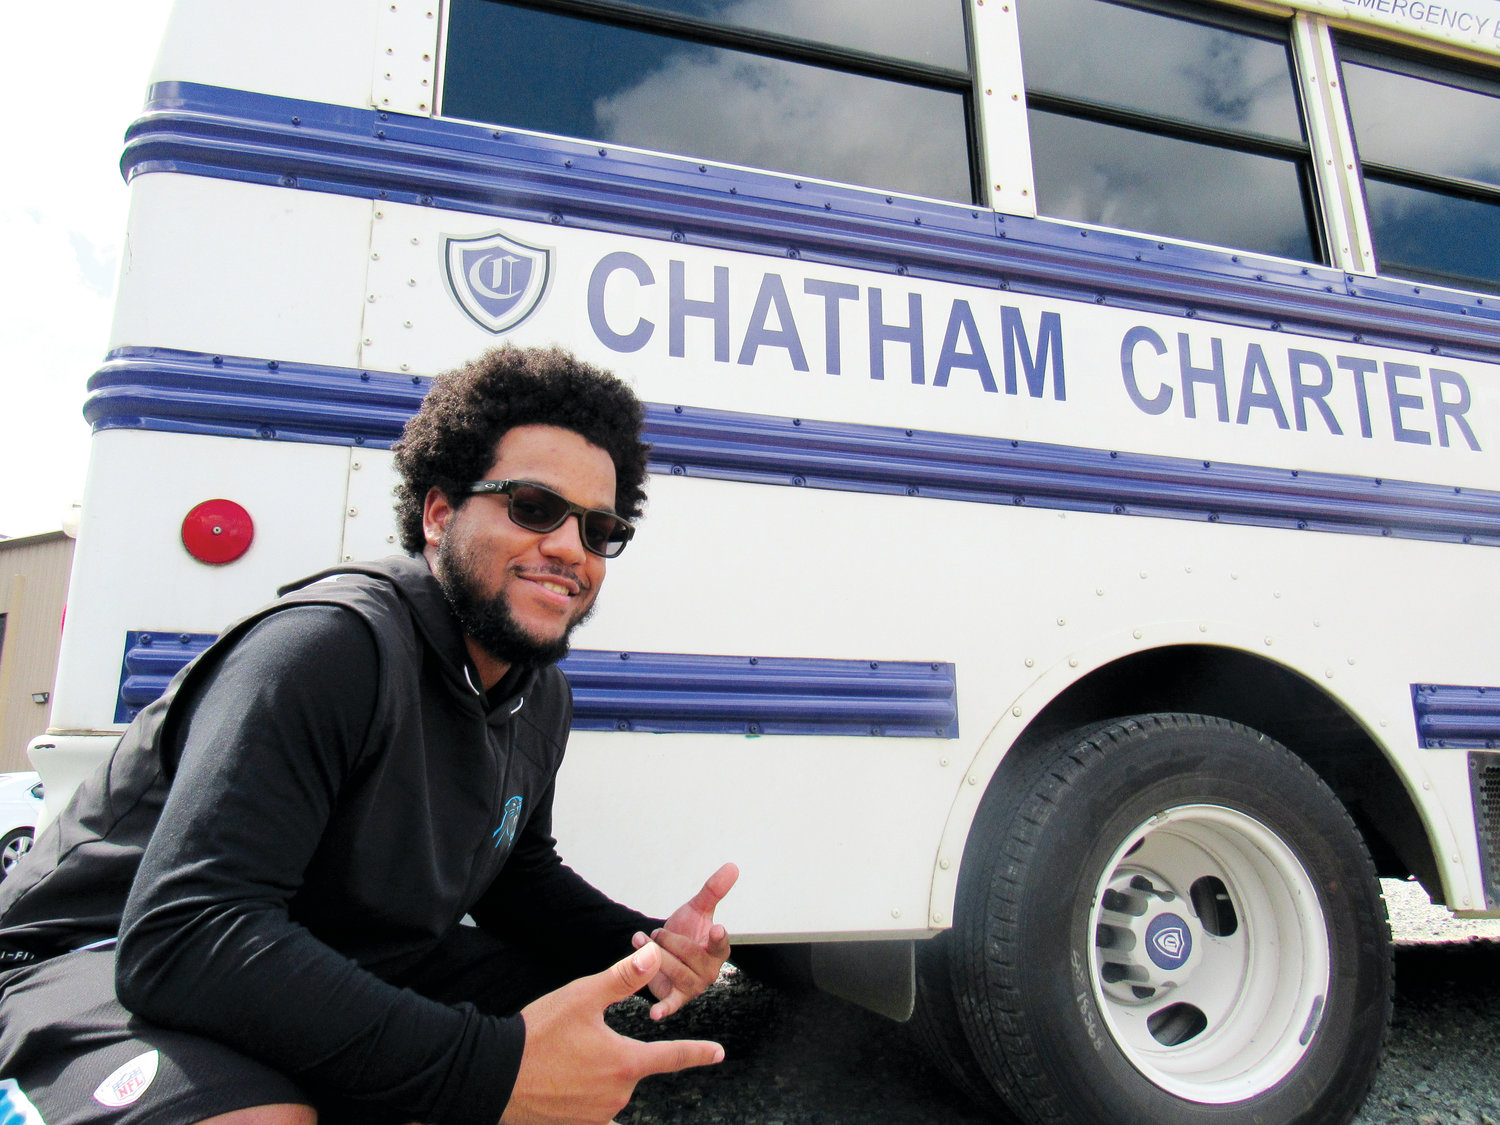 Chatham Charter senior A.J. Alston is begin classes at Johnson & Wales University in Charlotte in the fall to major in Sport & Event Management, and hopefully one day work for the Carolina Panthers.